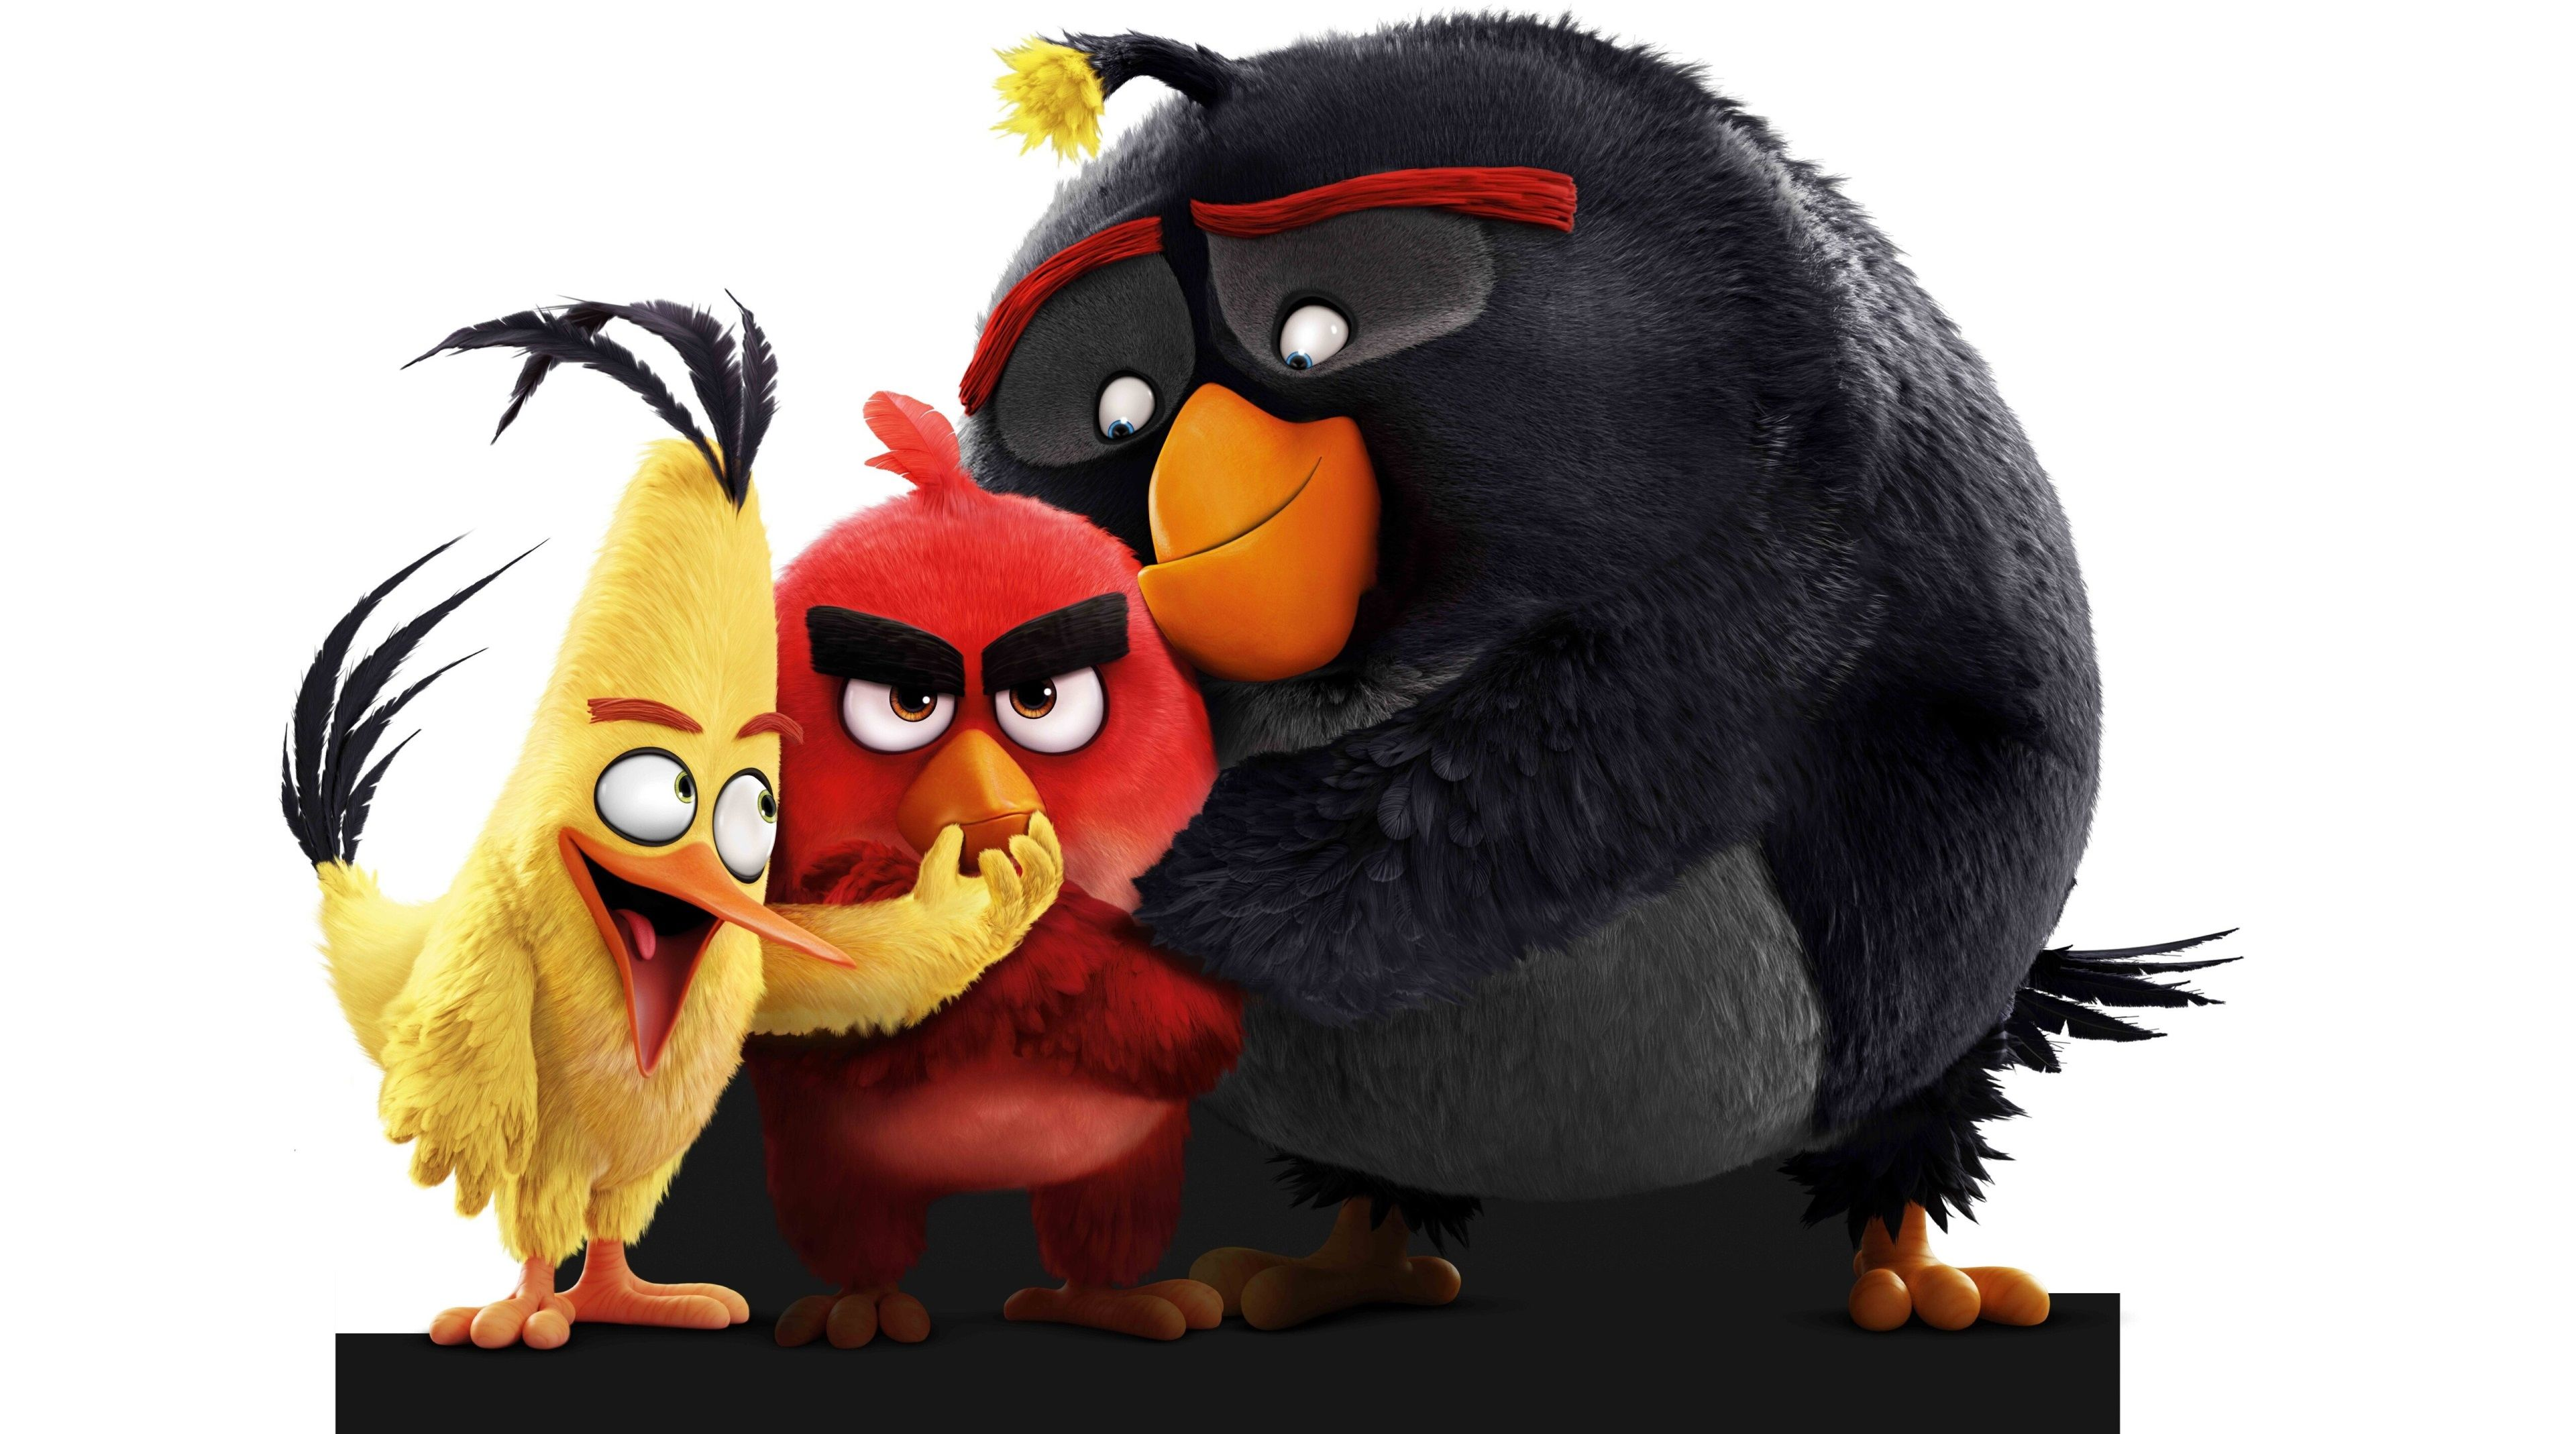 3840x2138 Angry Birds Movie 4k Best Wallpaper For Desktop Background Angry Birds Chuck Angry Birds Angry Birds Characters